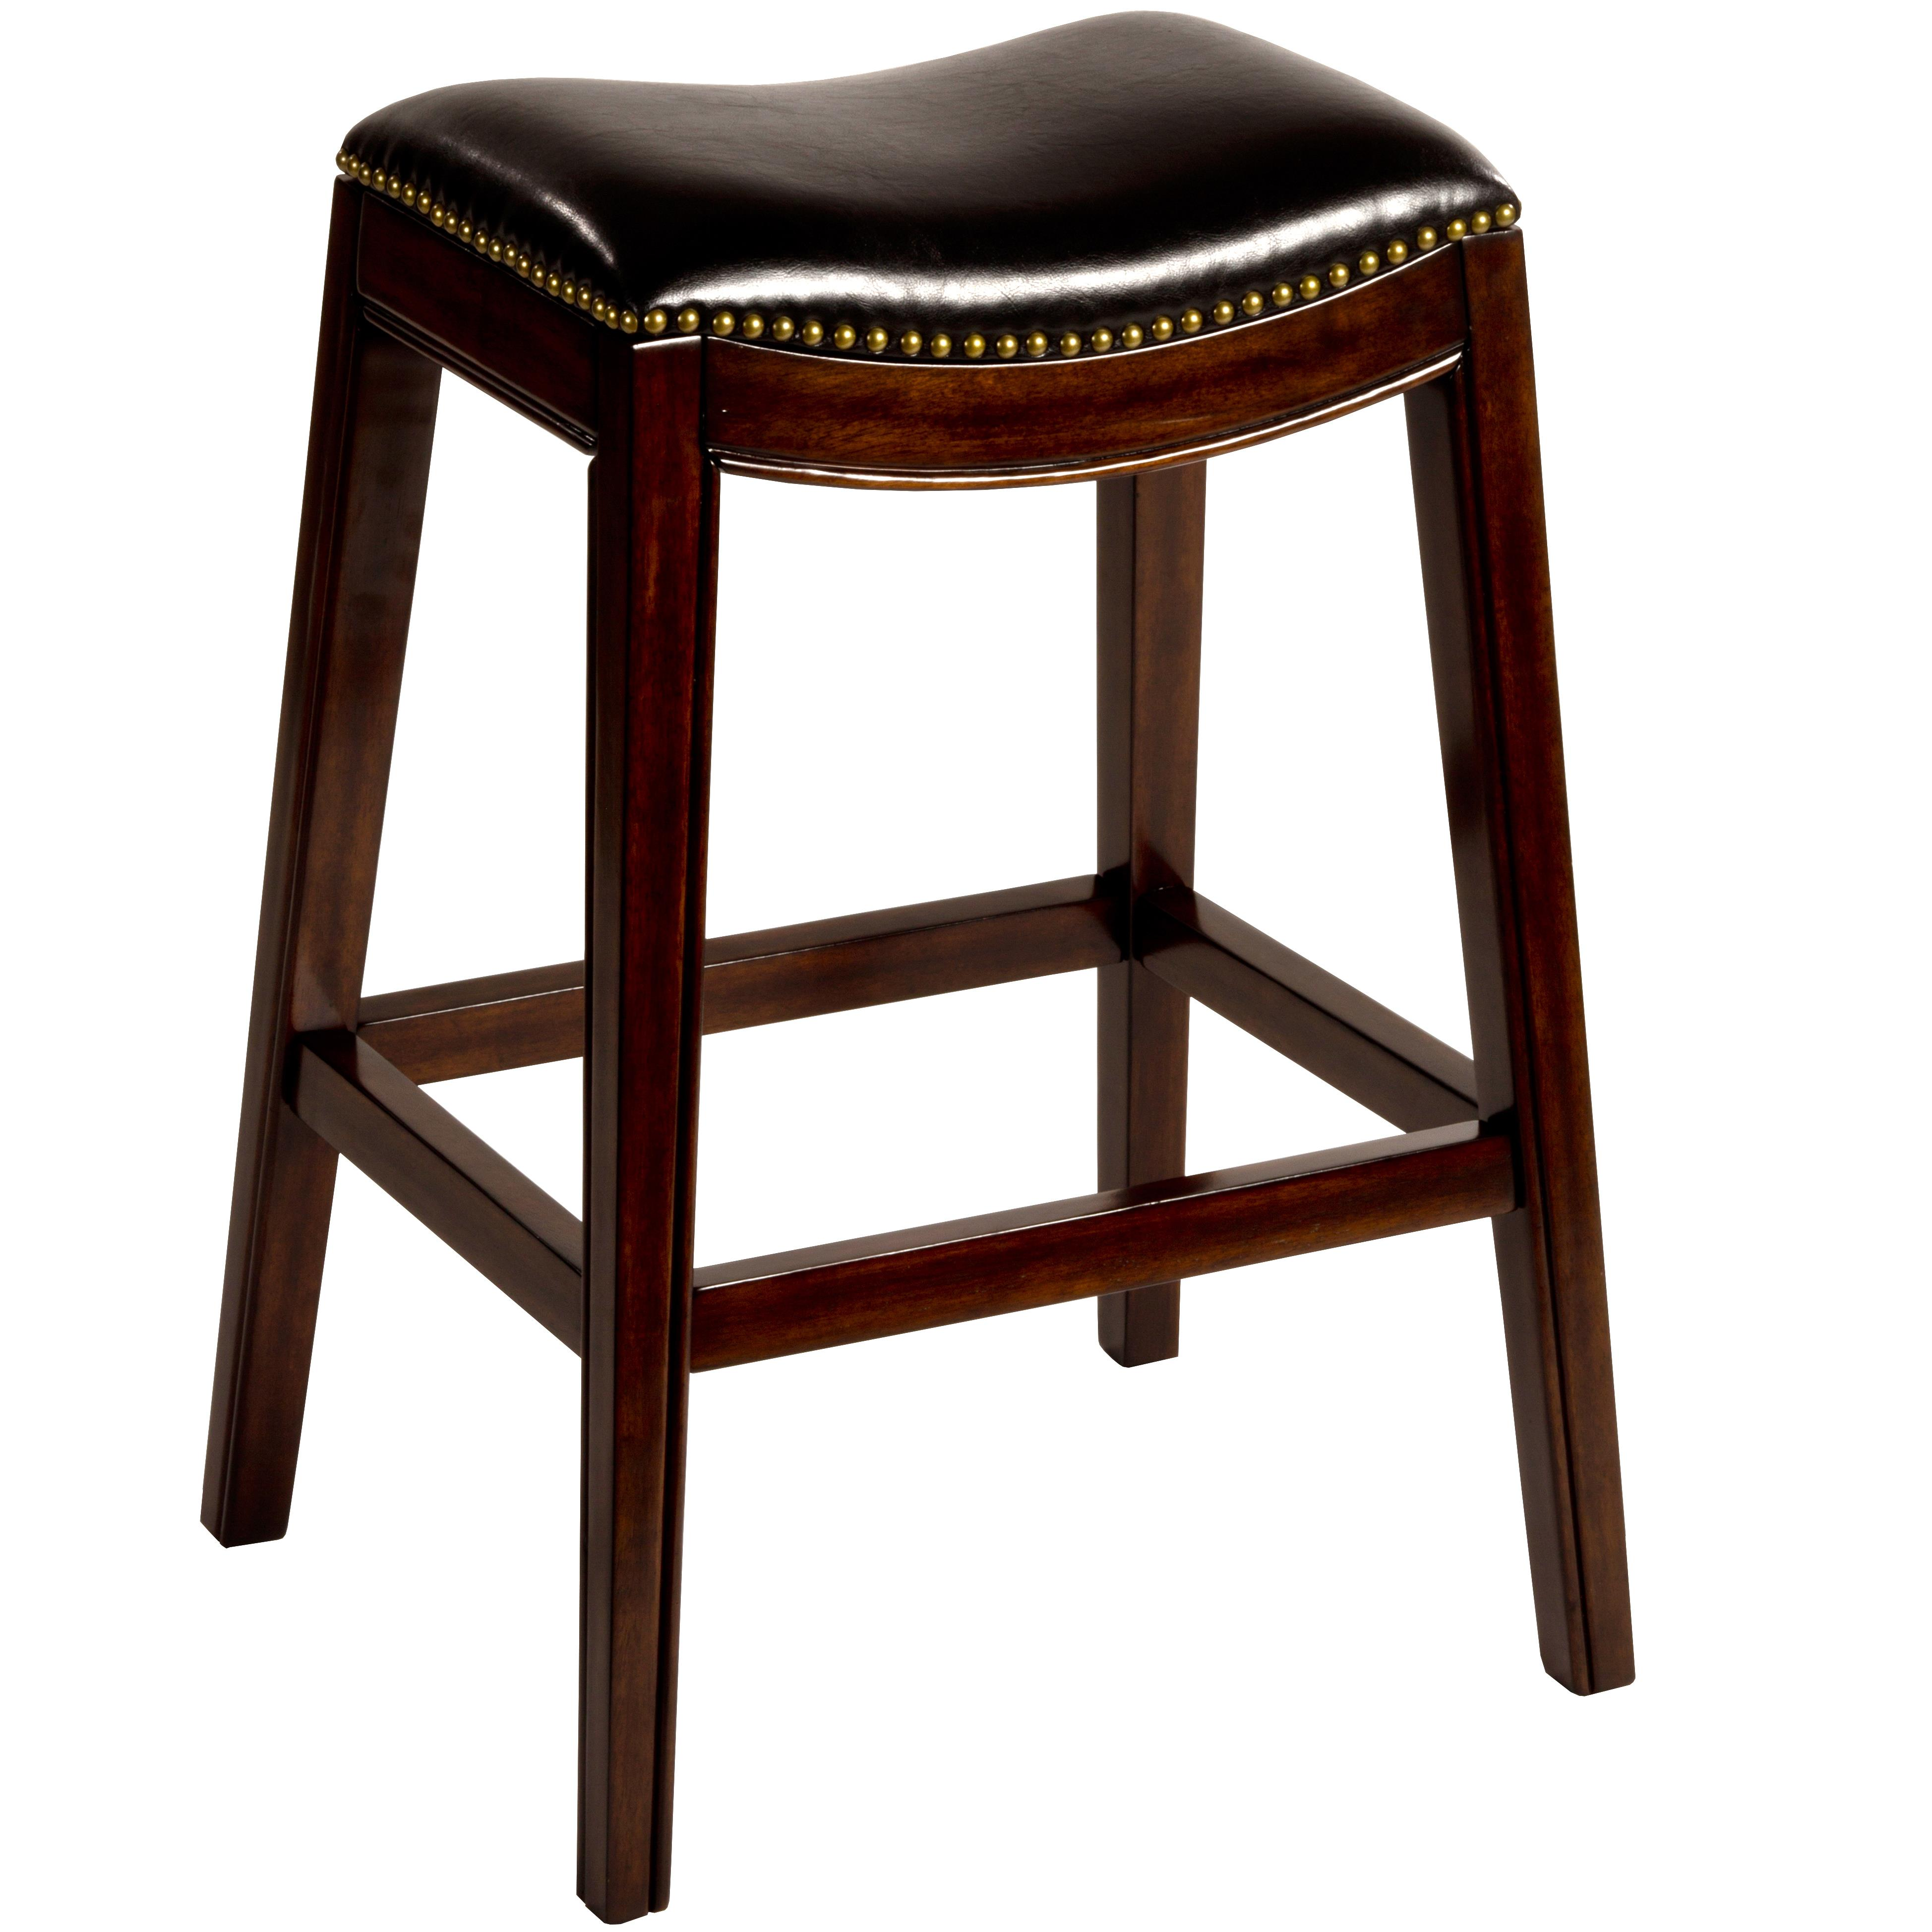 Hillsdale backless bar stools 26 sorella saddle backless for Counter bar stools